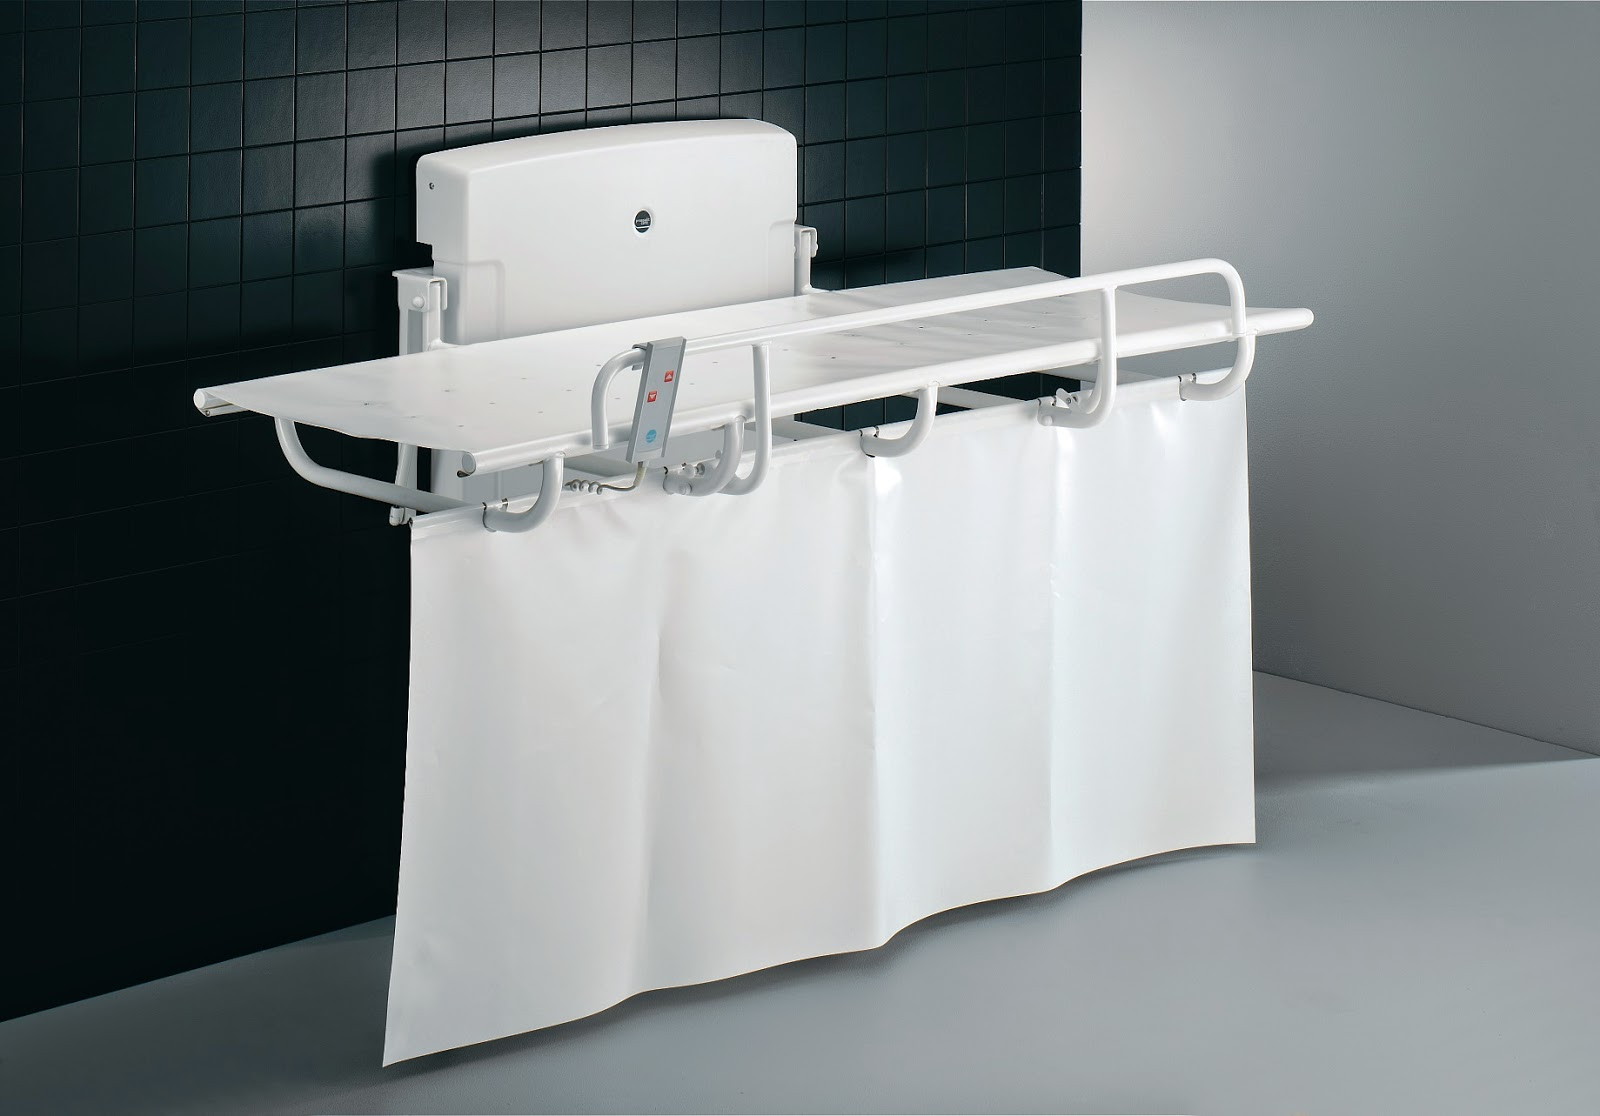 Pressalit Powered Nursing Bench with Splash Curtain